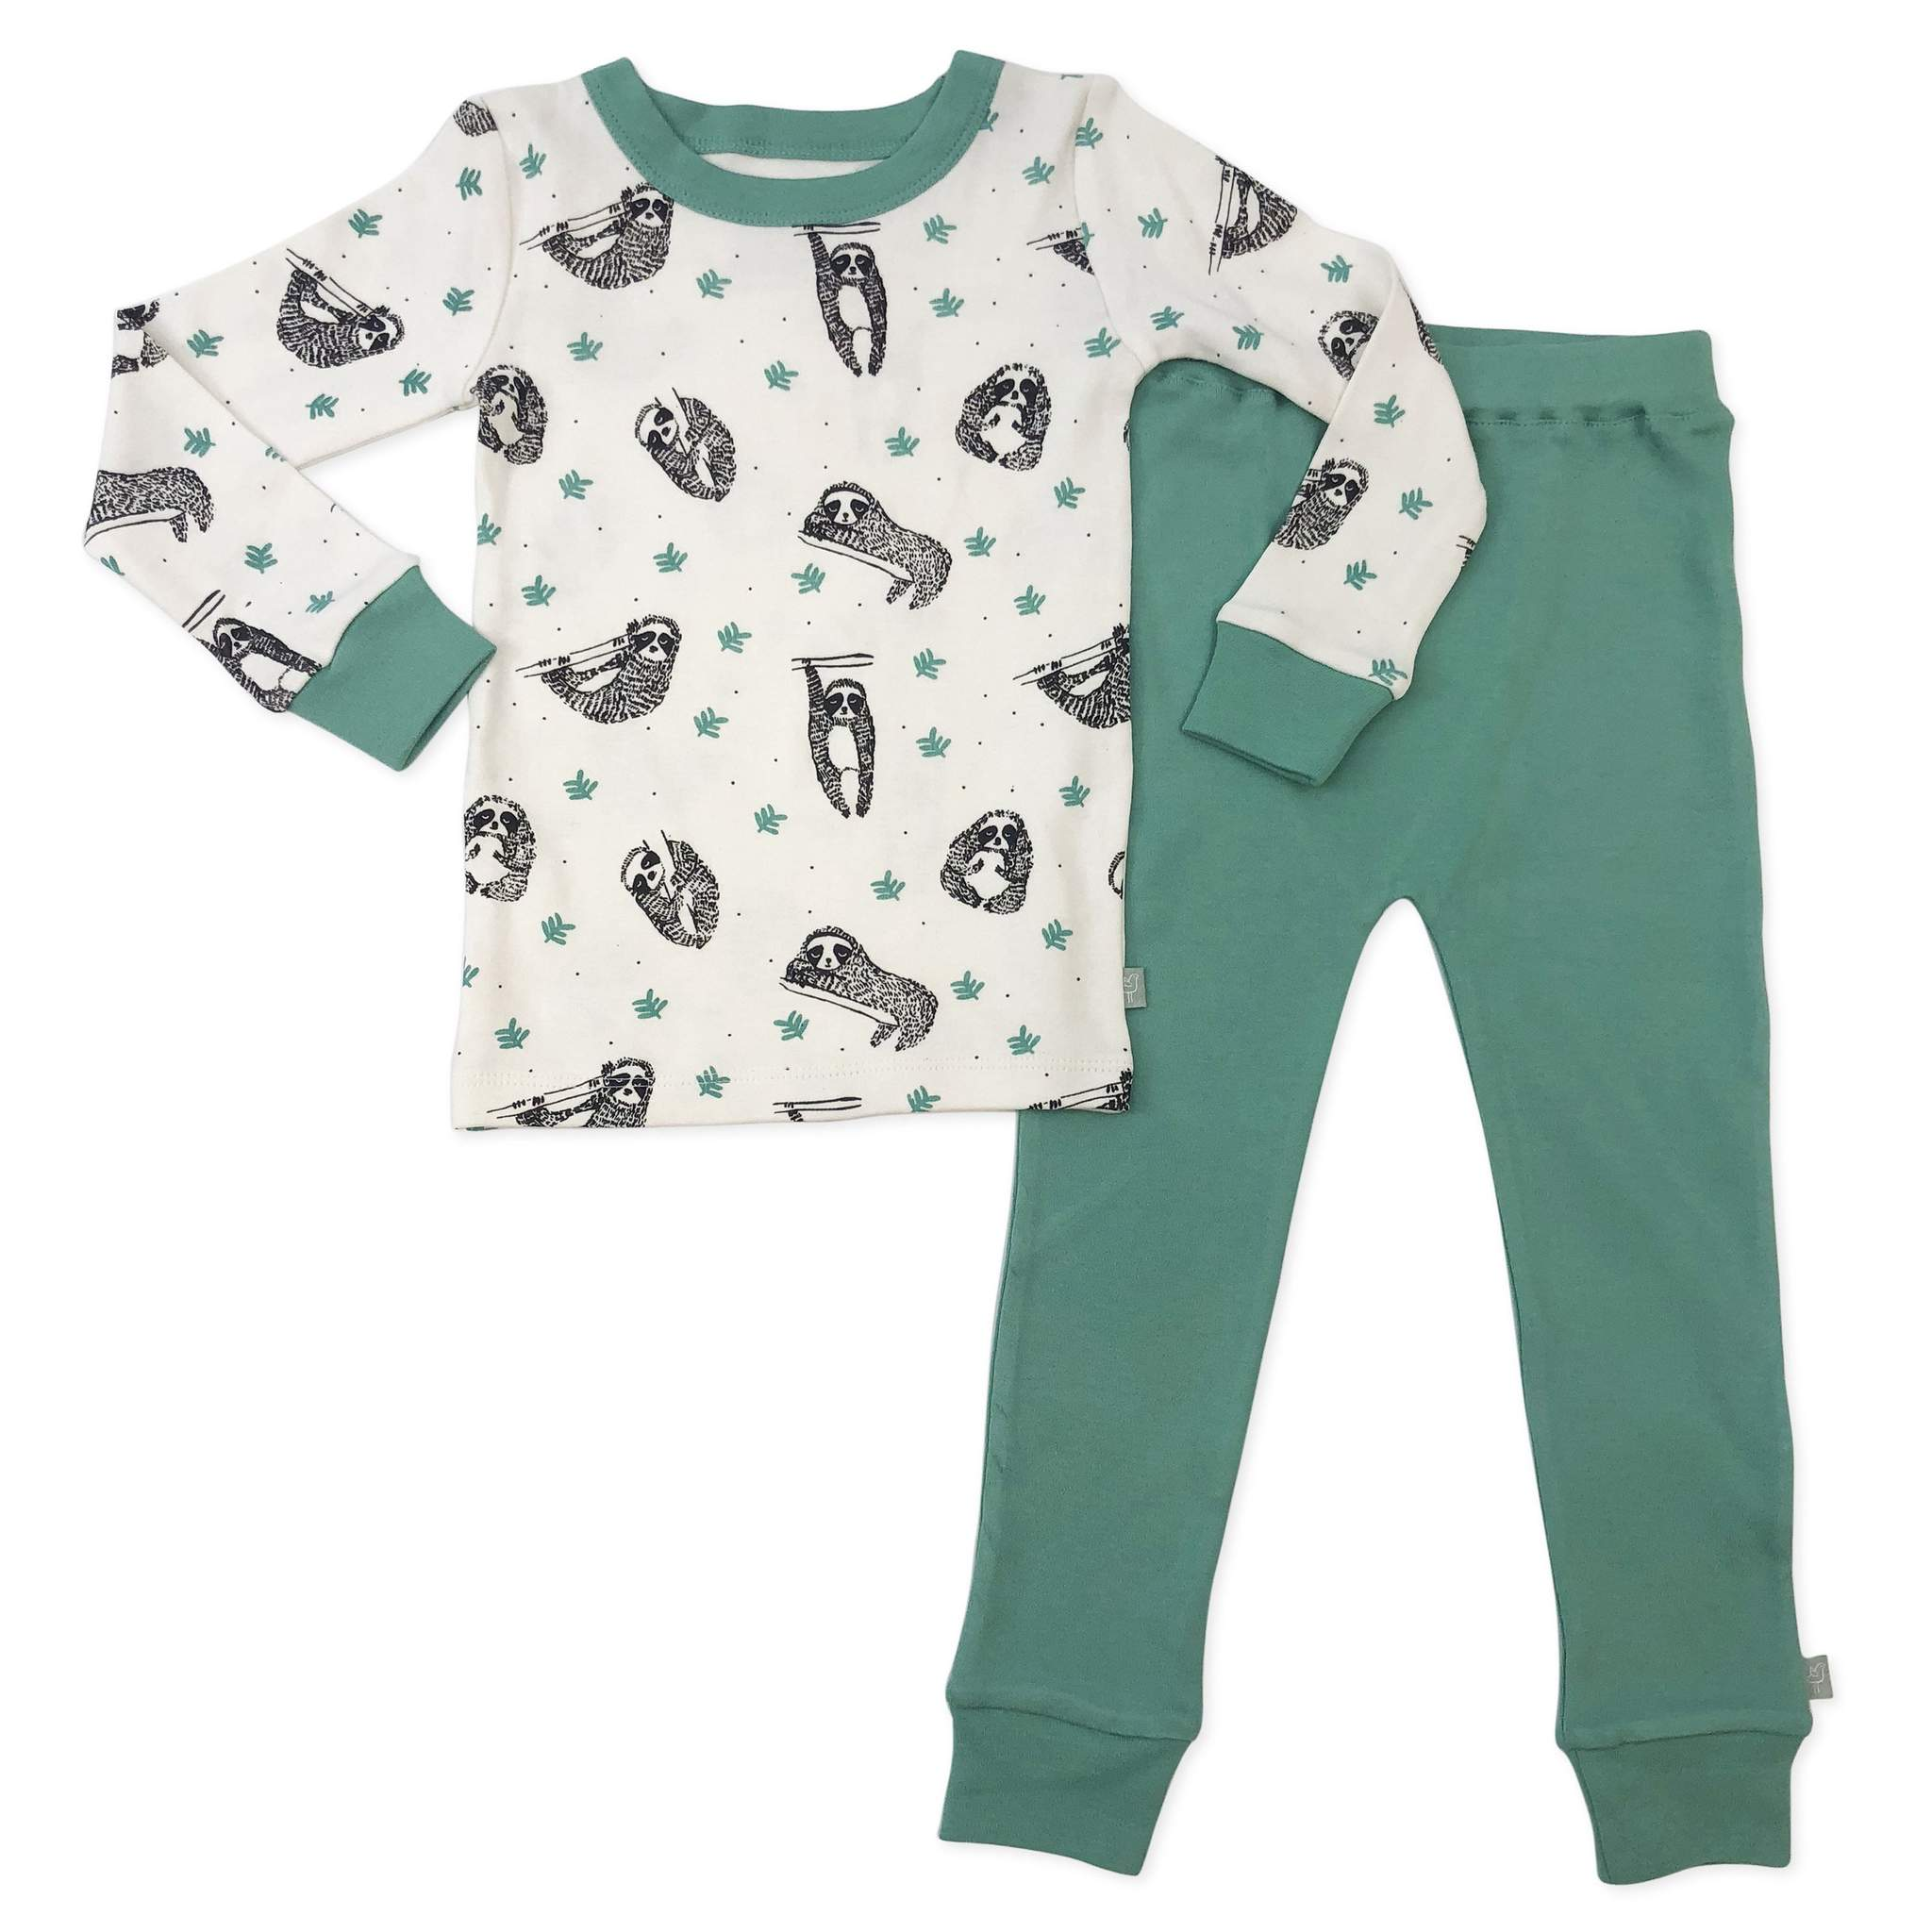 Finn + Emma Sloth Toddler Pajamas - 18-24 Months